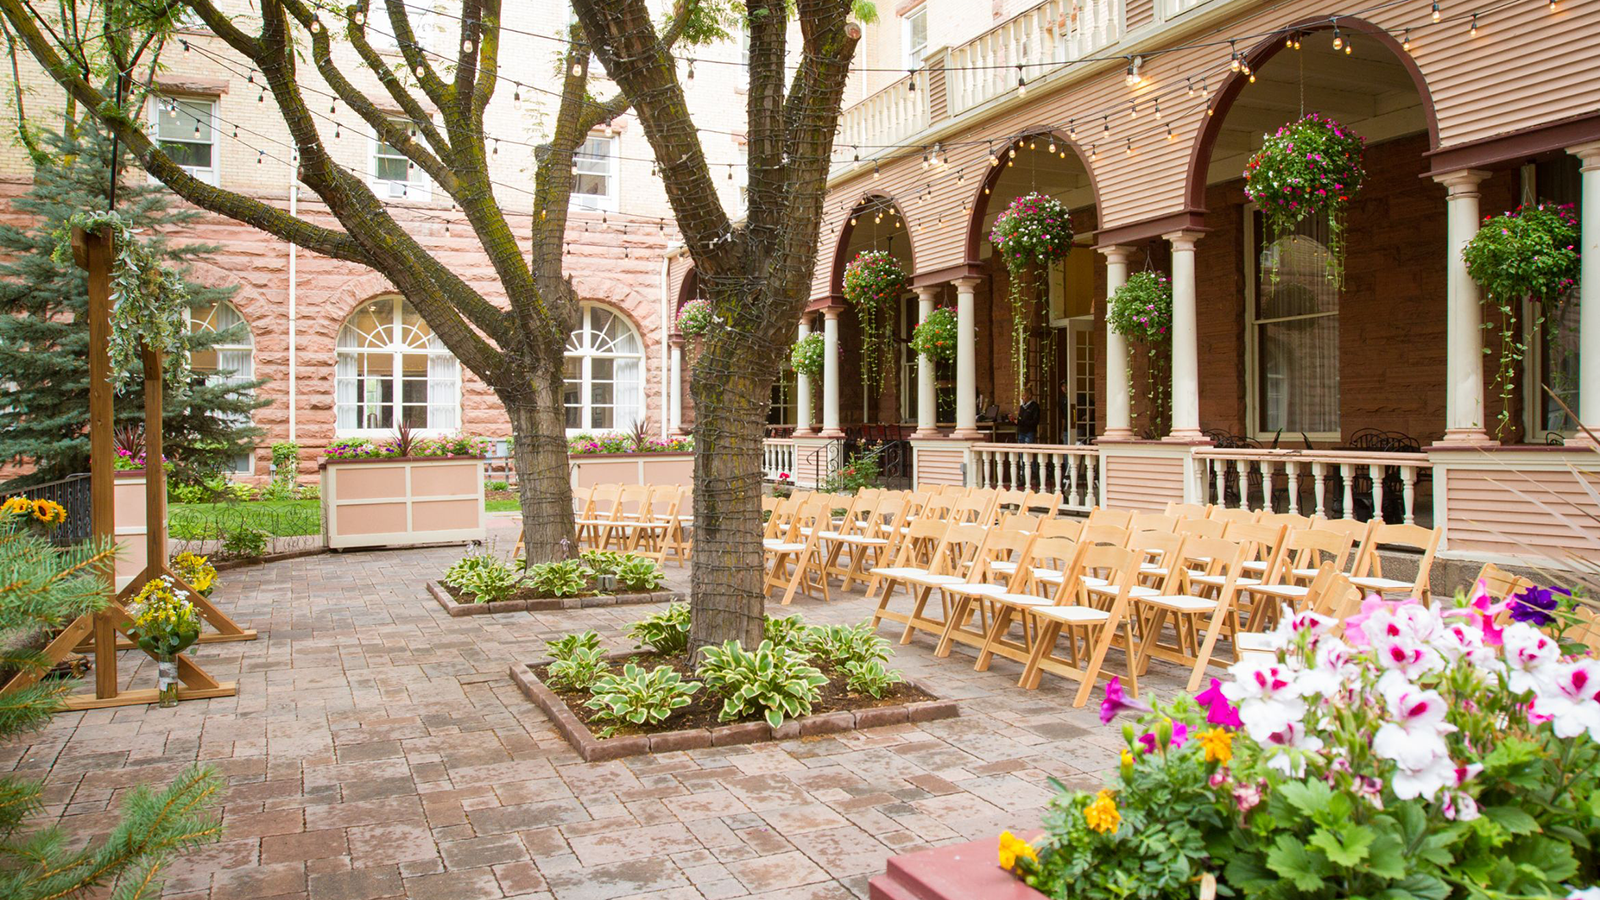 Image of Courtyard Wedding Aisle Hotel Colorado, 1893, Member of Historic Hotels of America, Glenwood Springs, Colorado